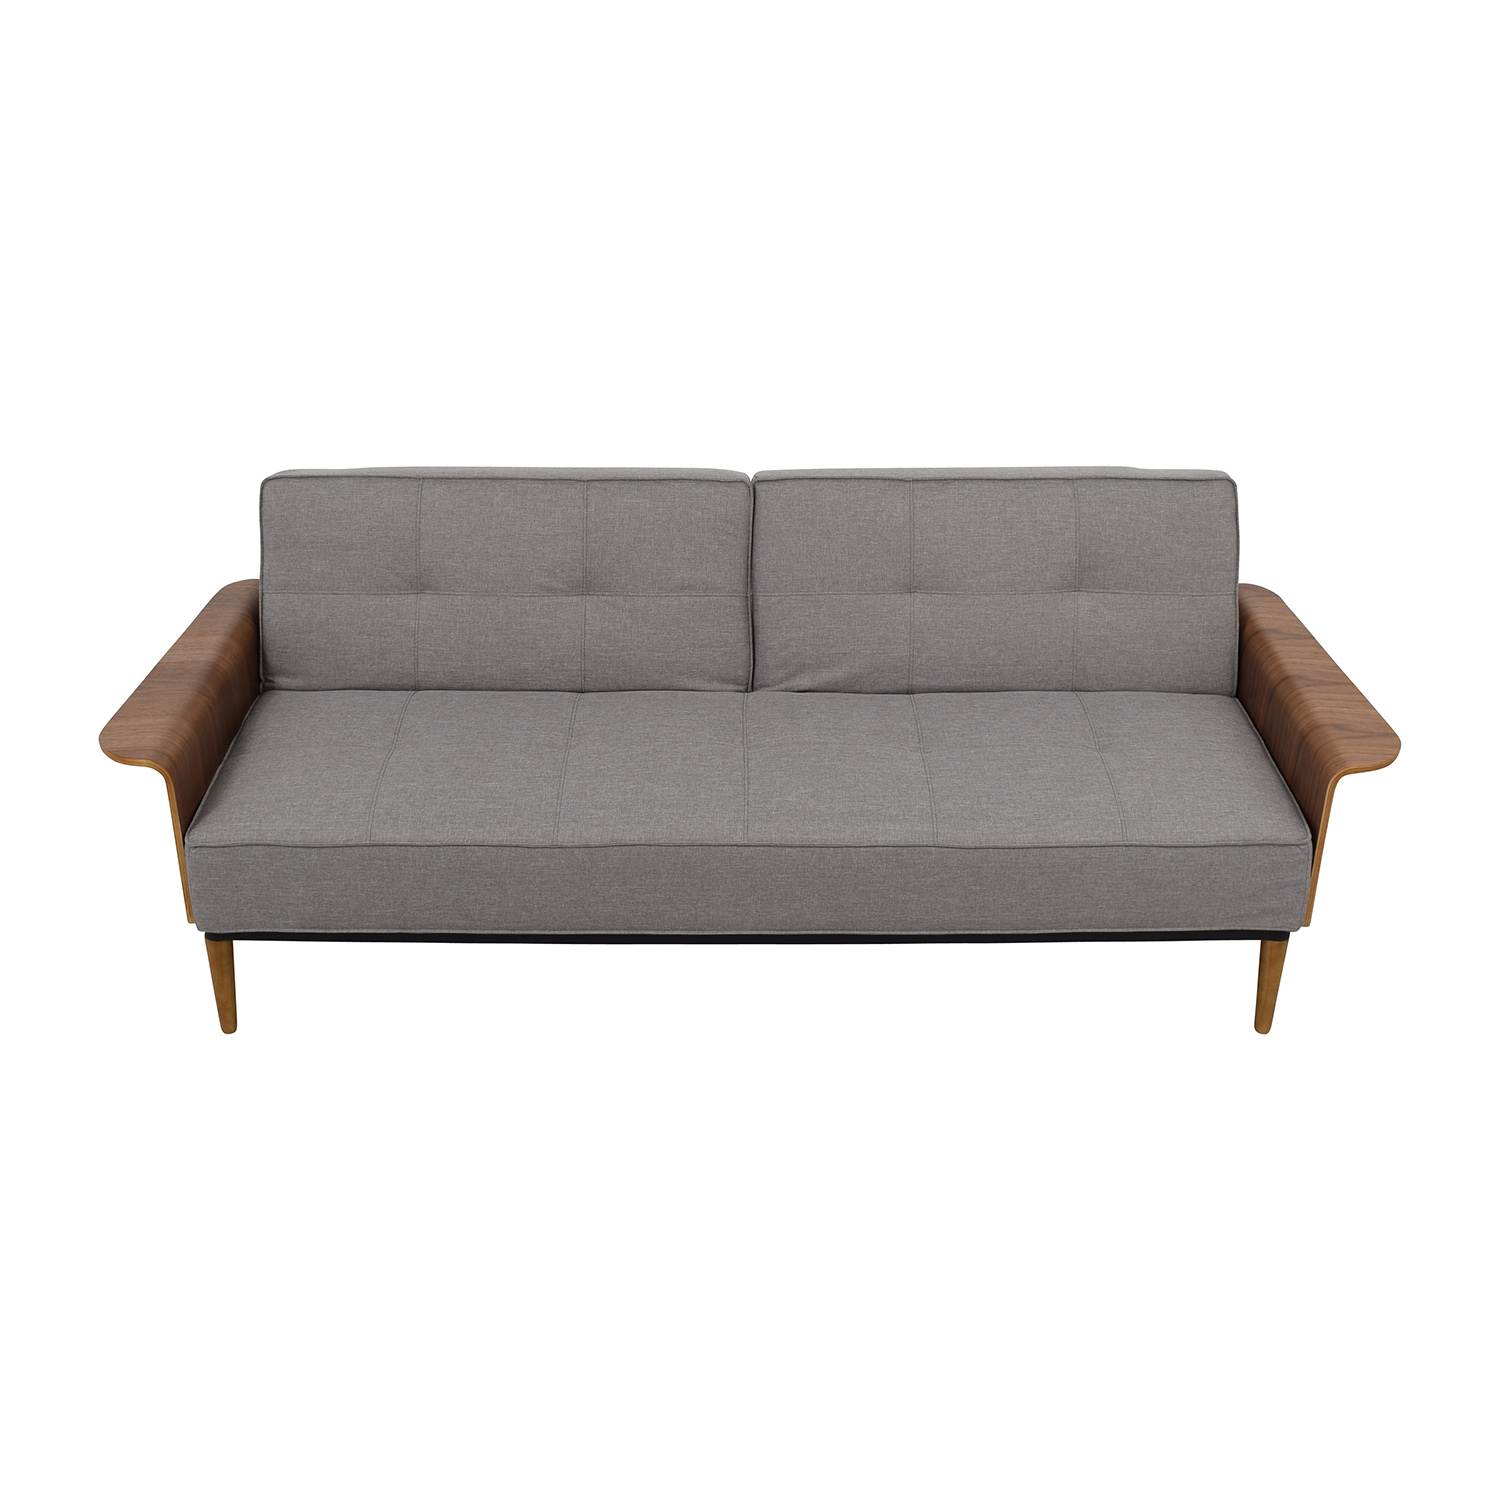 Inmod Inmod Bjorg Tufted Light Grey Sofabed used